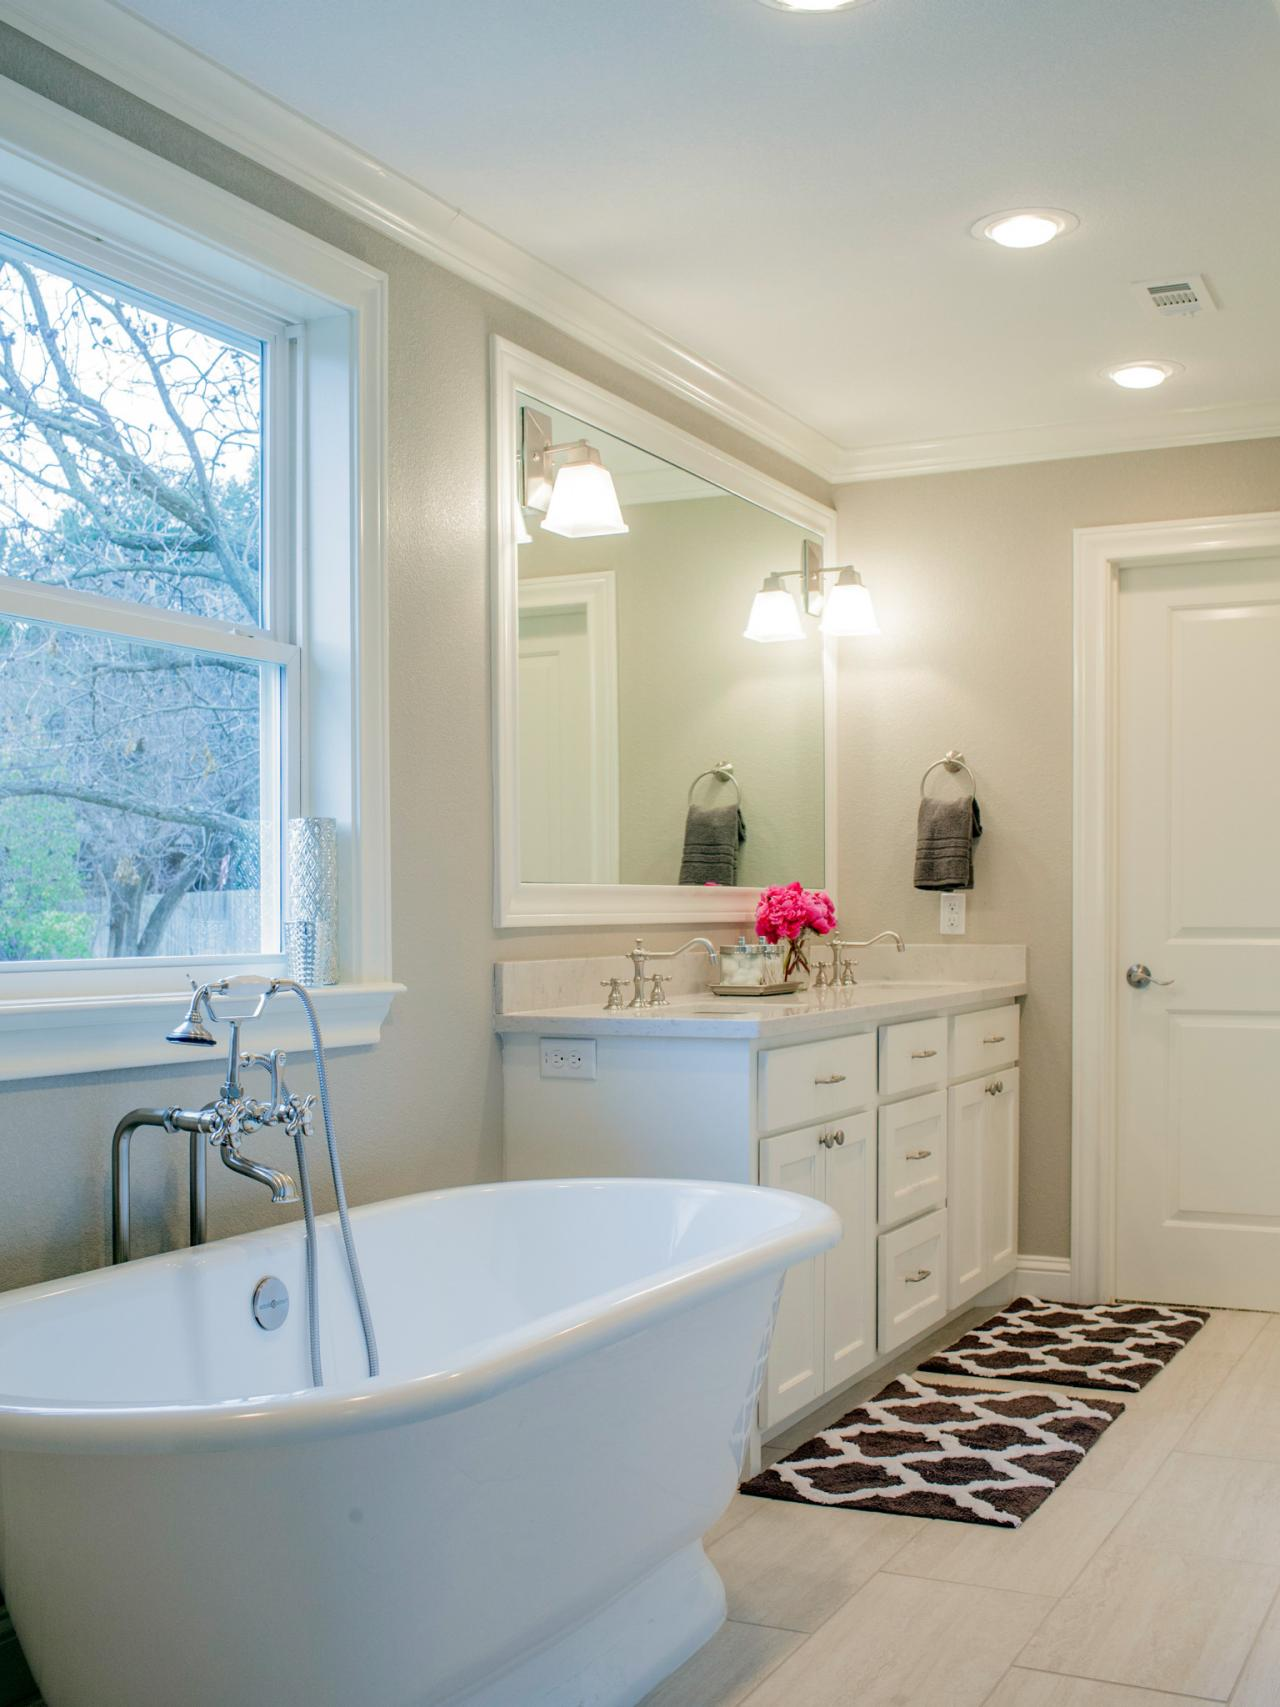 Updated Master Bath with Freestanding Tub and Shower | HGTV